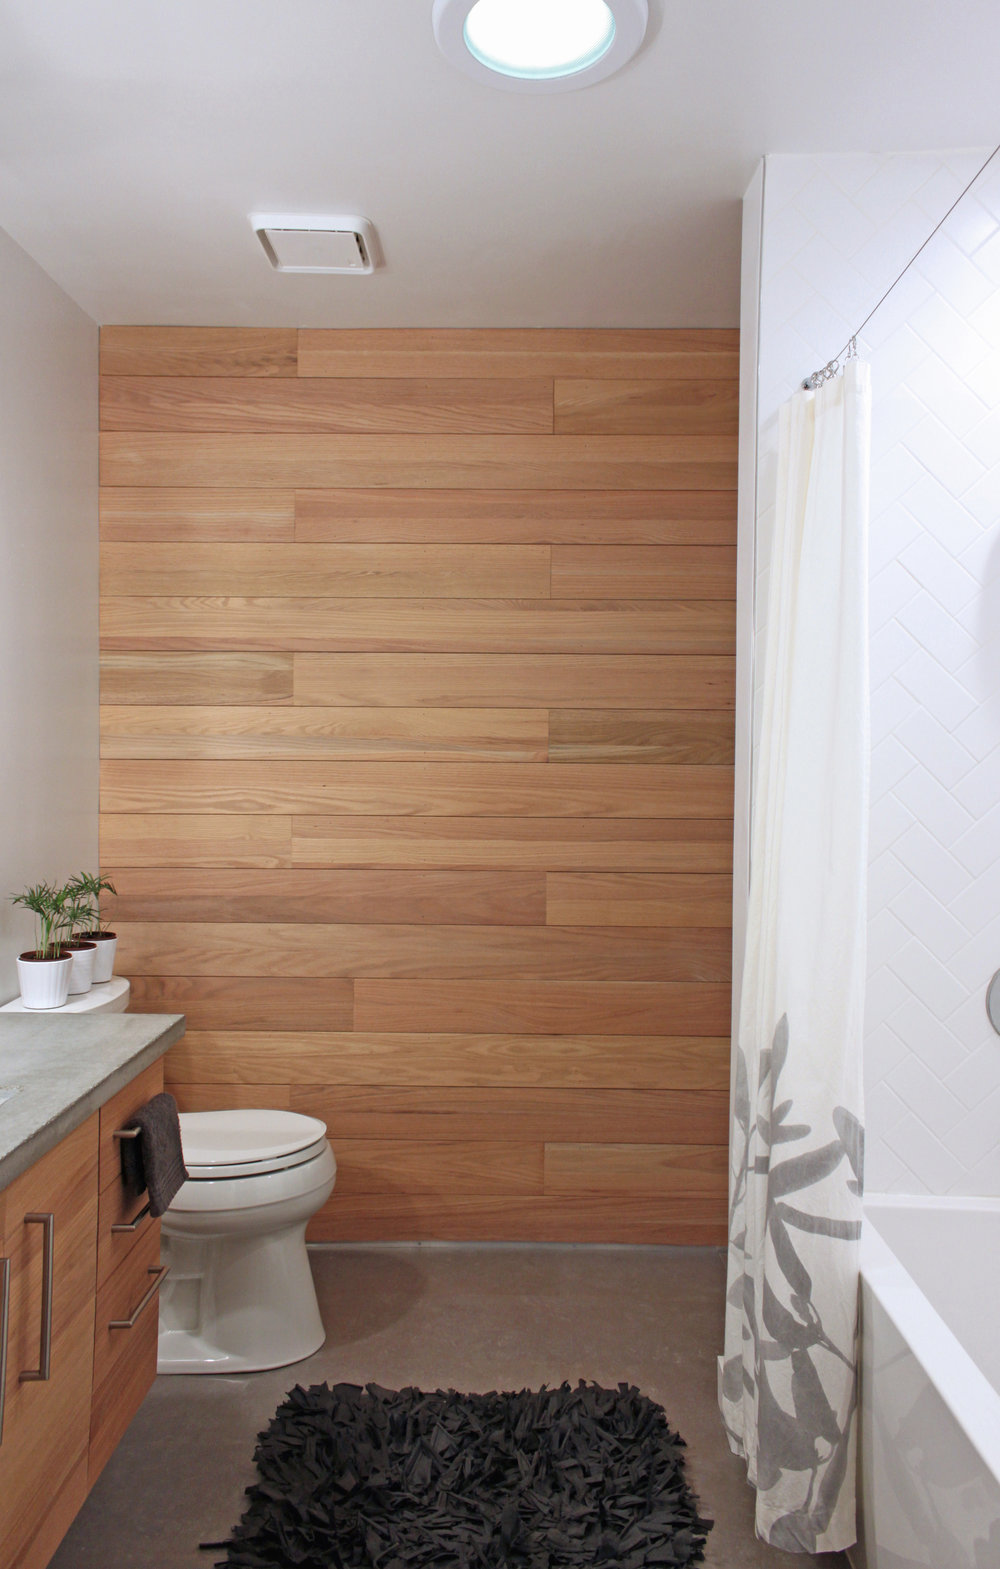 A 1970s bathroom remodel with a ton of green features. It includes cork flooring, concrete counter, natural lighting, herringbone subway tiles, and a red oak wall and vanity with water efficient fixtures.